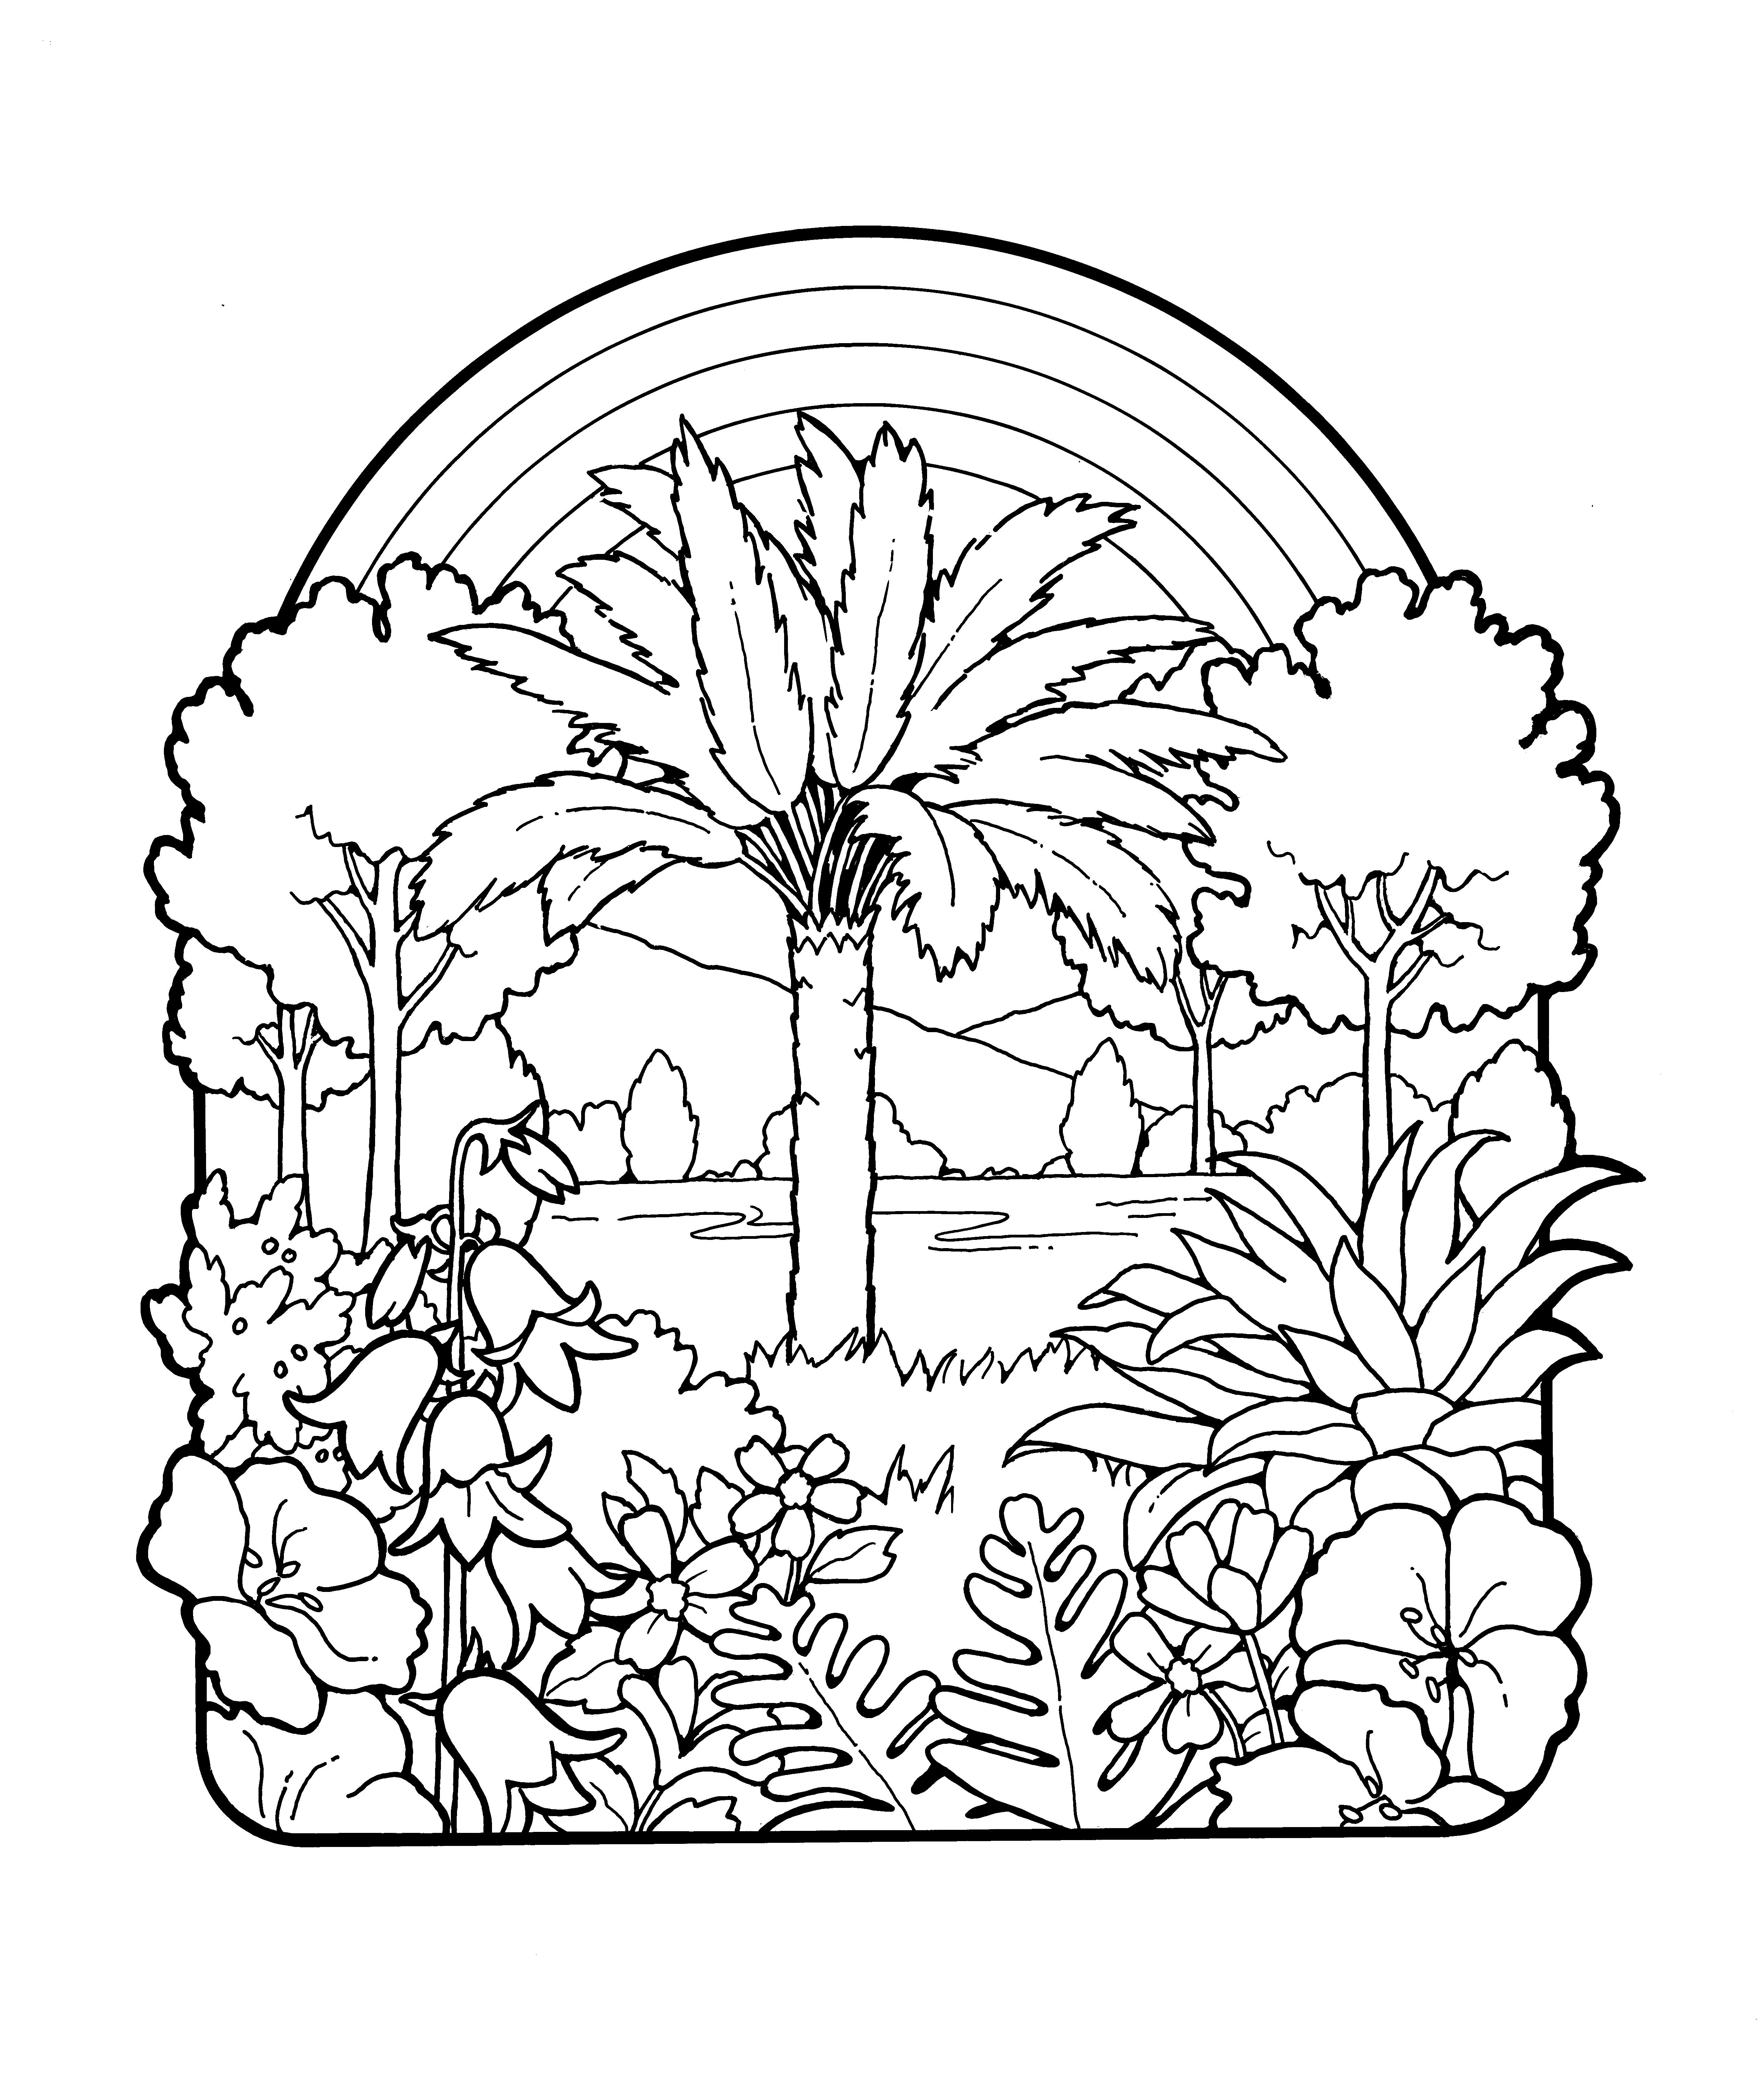 An illustration of plants and a rainbow.